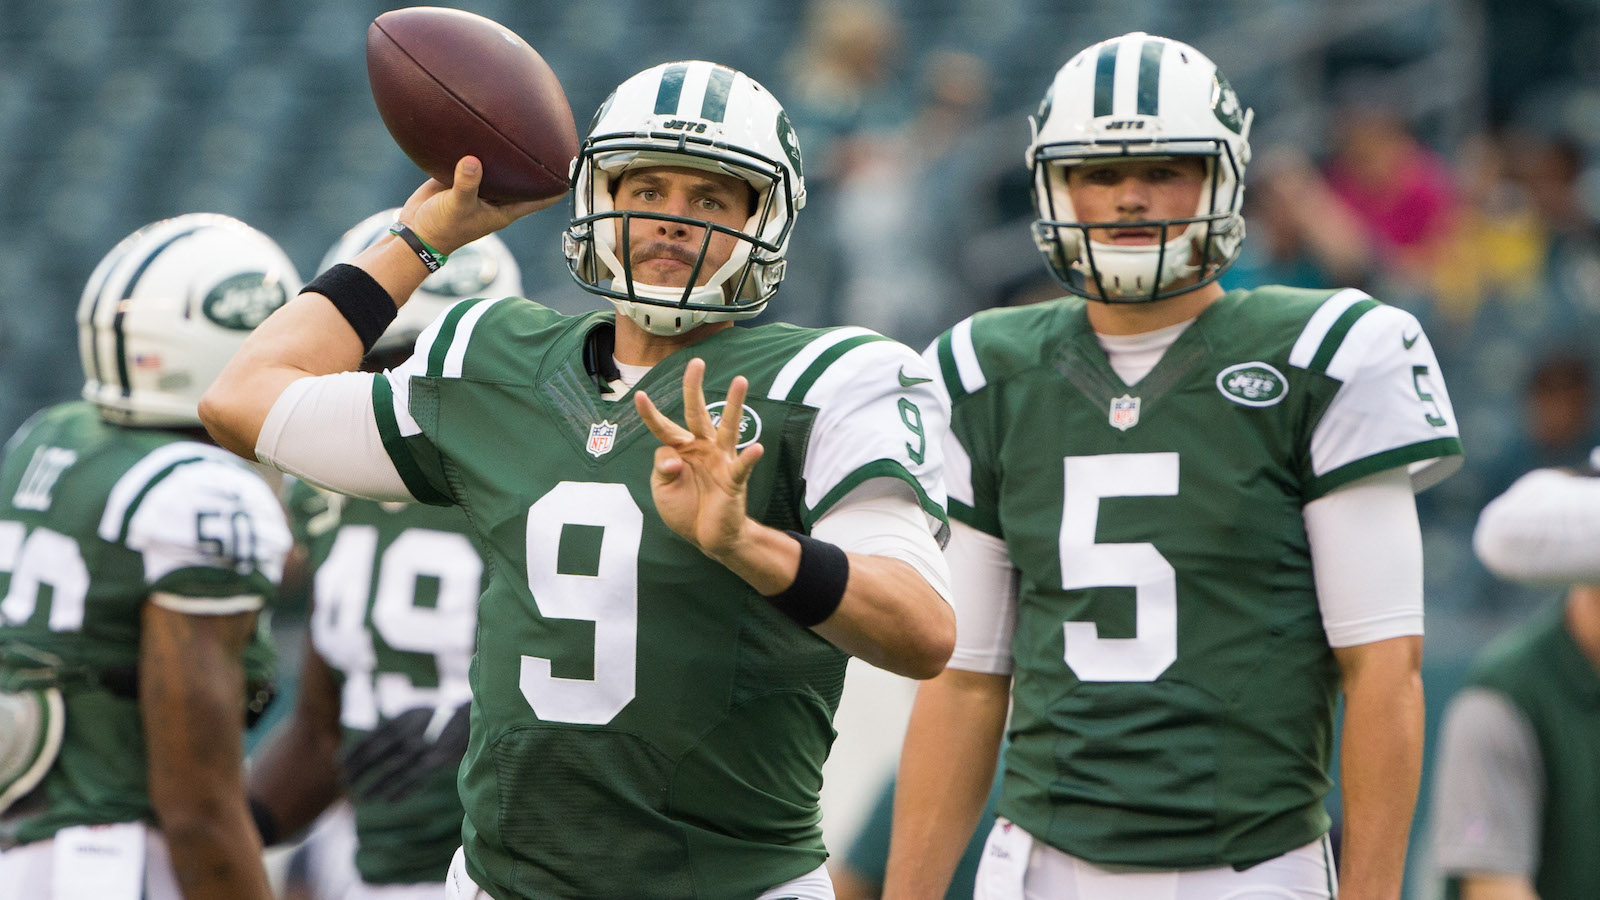 101916-NFL-New-York-Jets-Bryce-Petty-Christian-Hackenberg